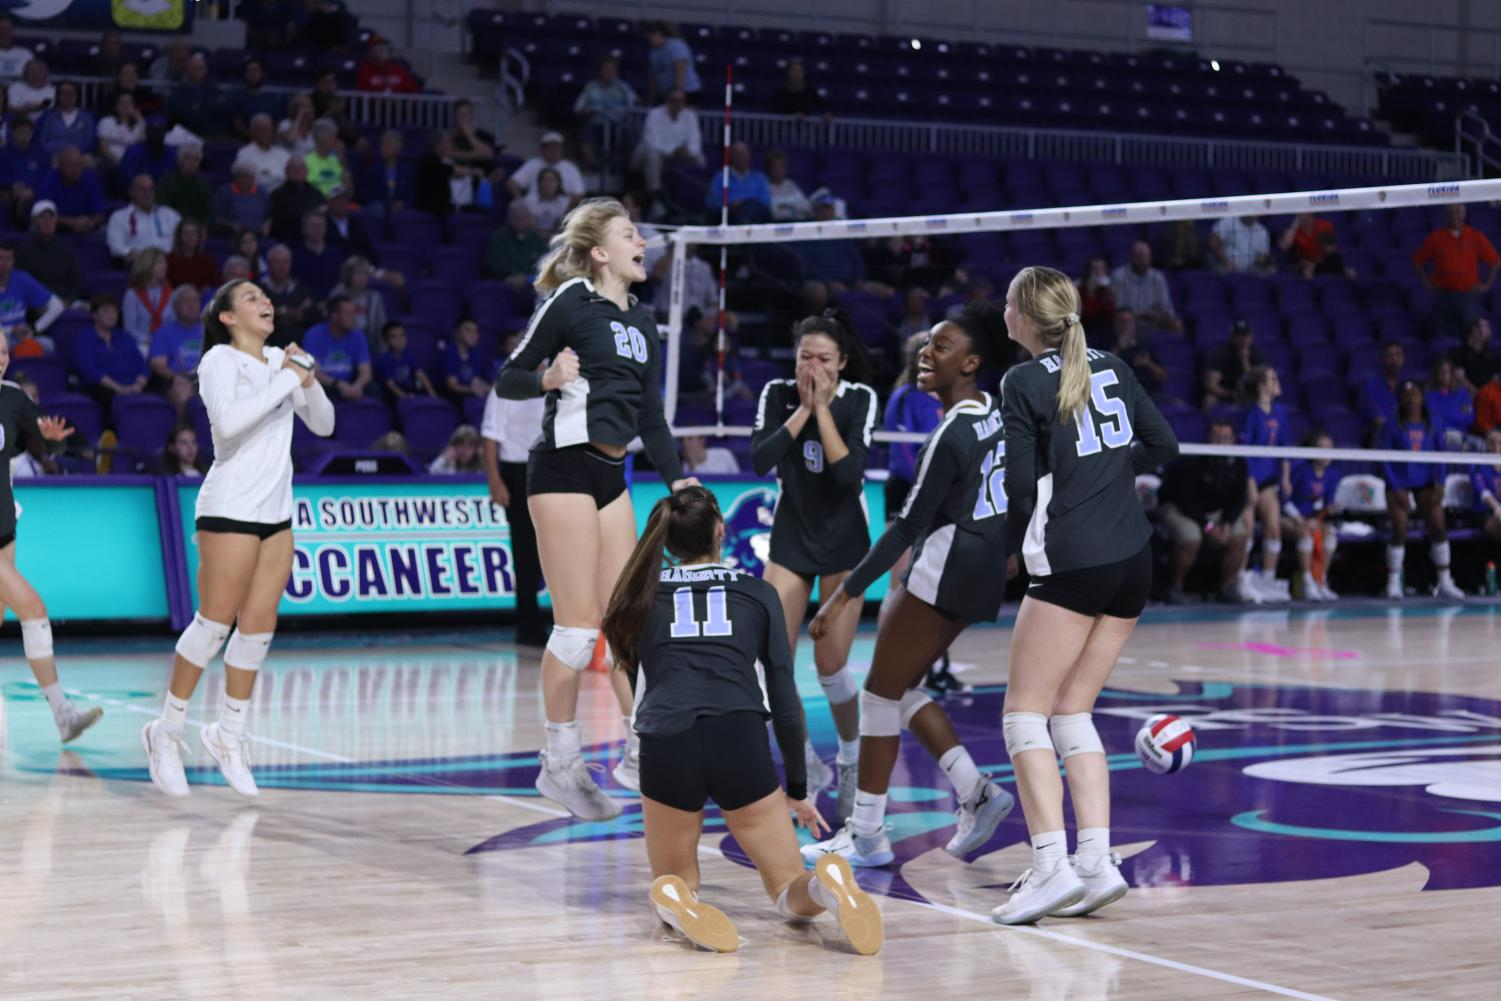 The girls volleyball team celebrates match point against Palm Beach Gardens. The team won its first state championship on Saturday, Nov. 16.